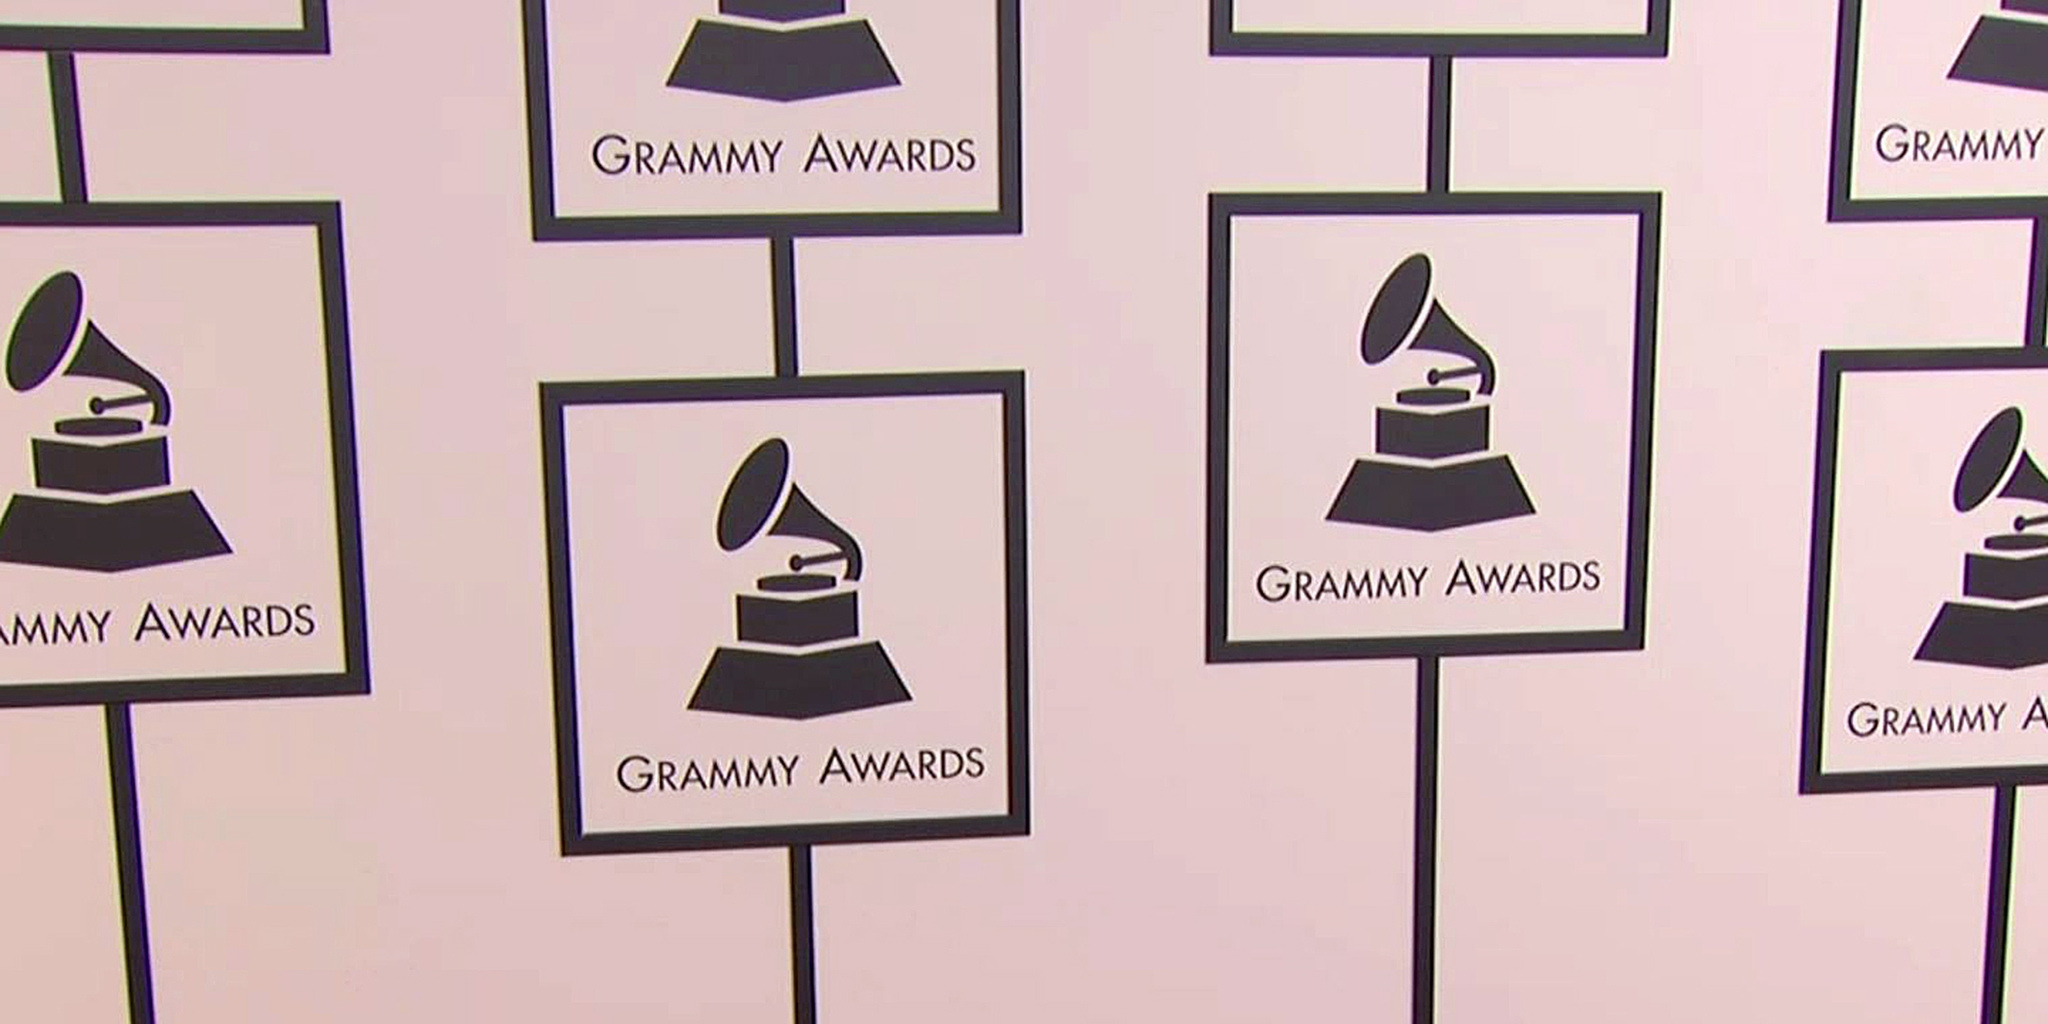 5 huge moments from the grammys preshow the daily dot 5 huge moments from the grammys preshow